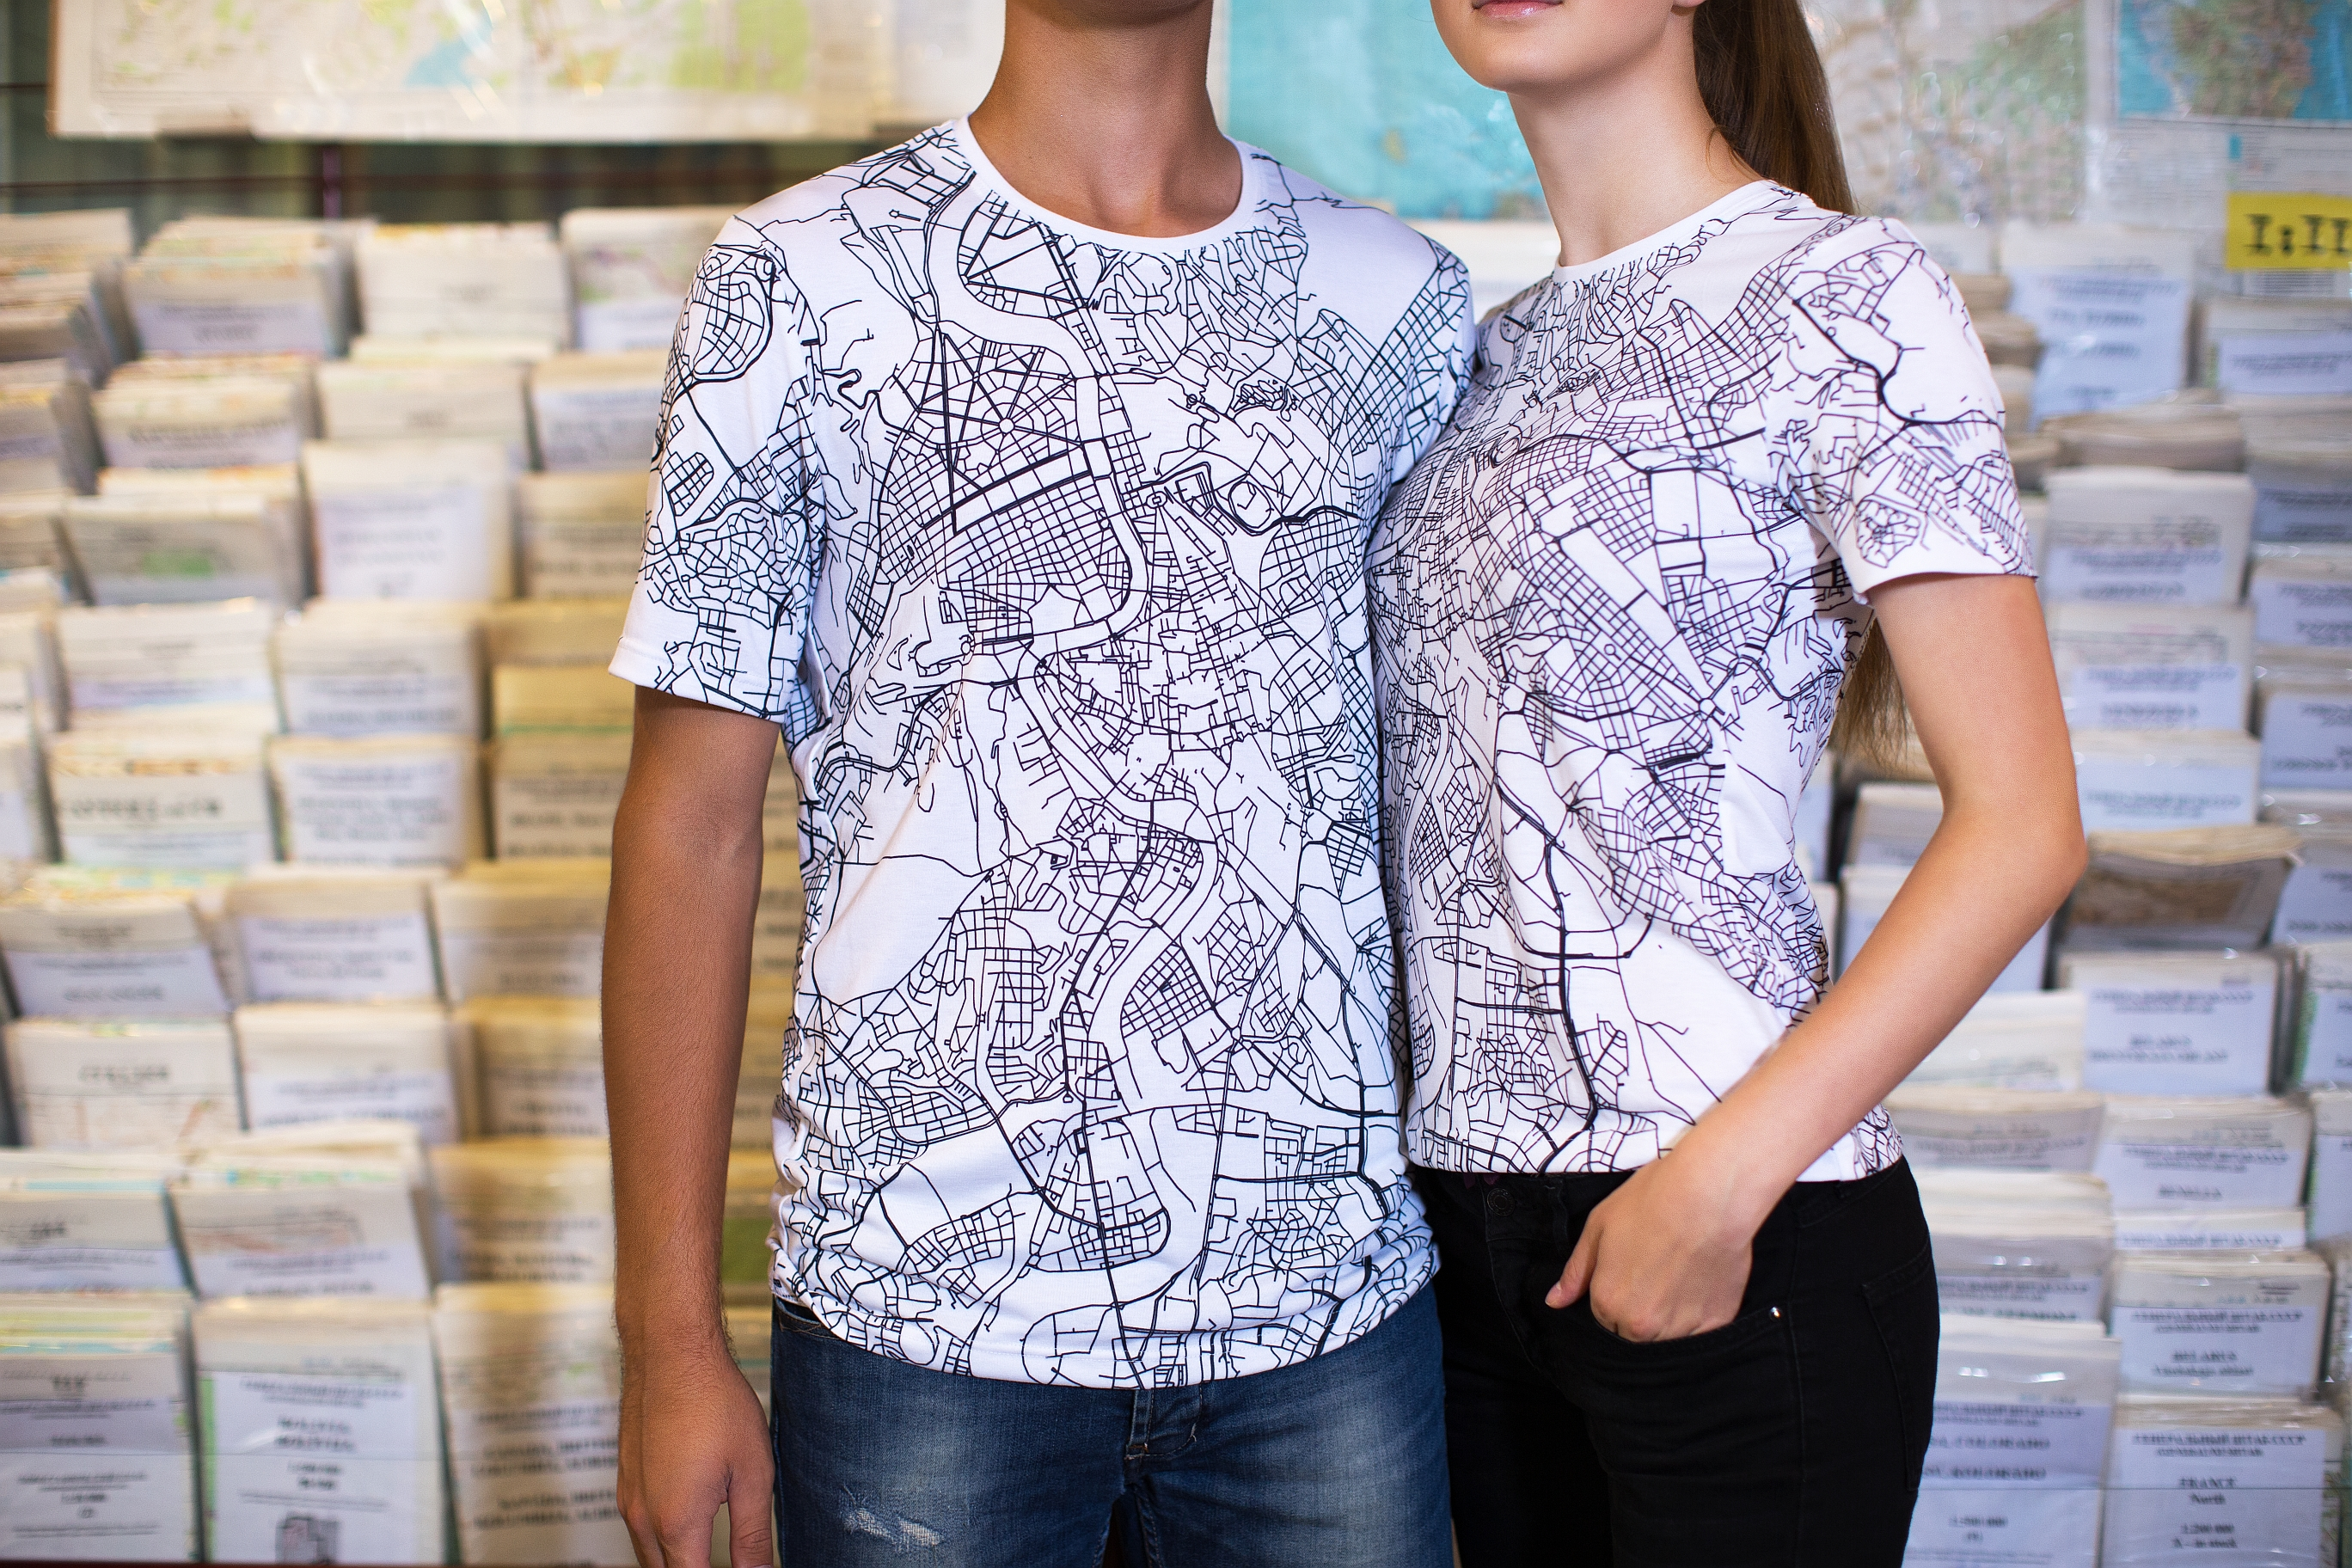 Couple shirt design download - Download All Images